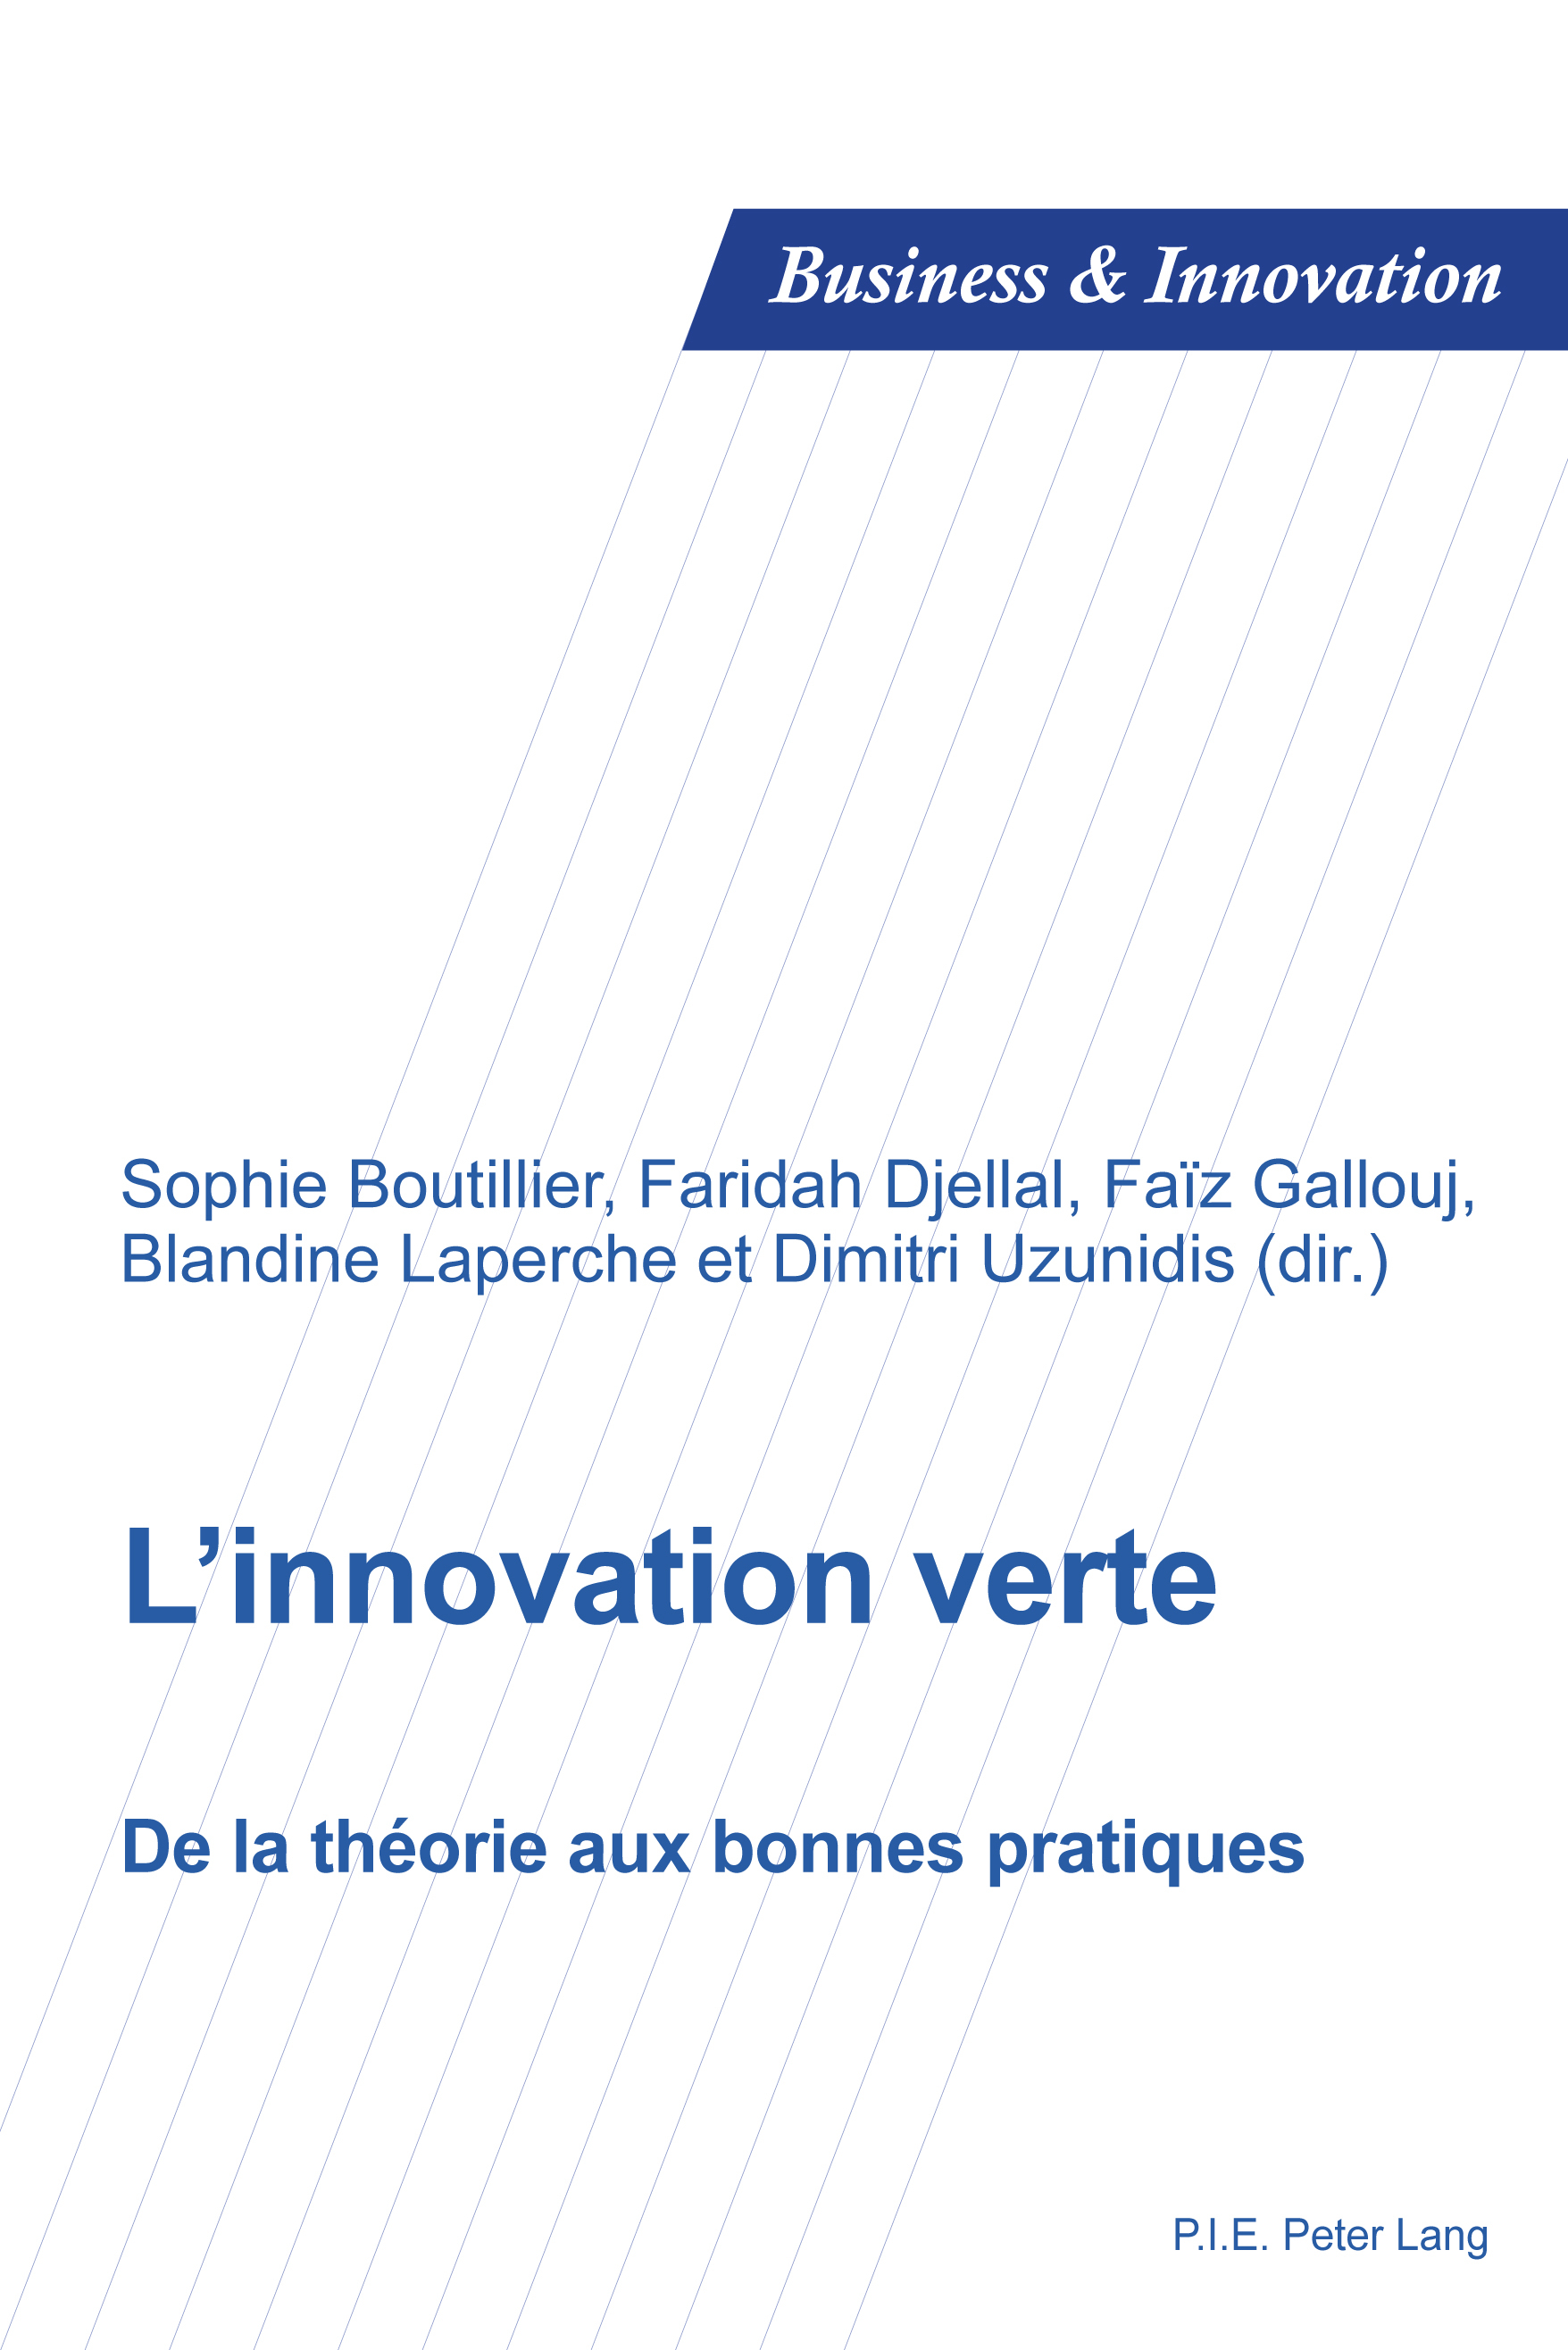 L'INNOVATION VERTE